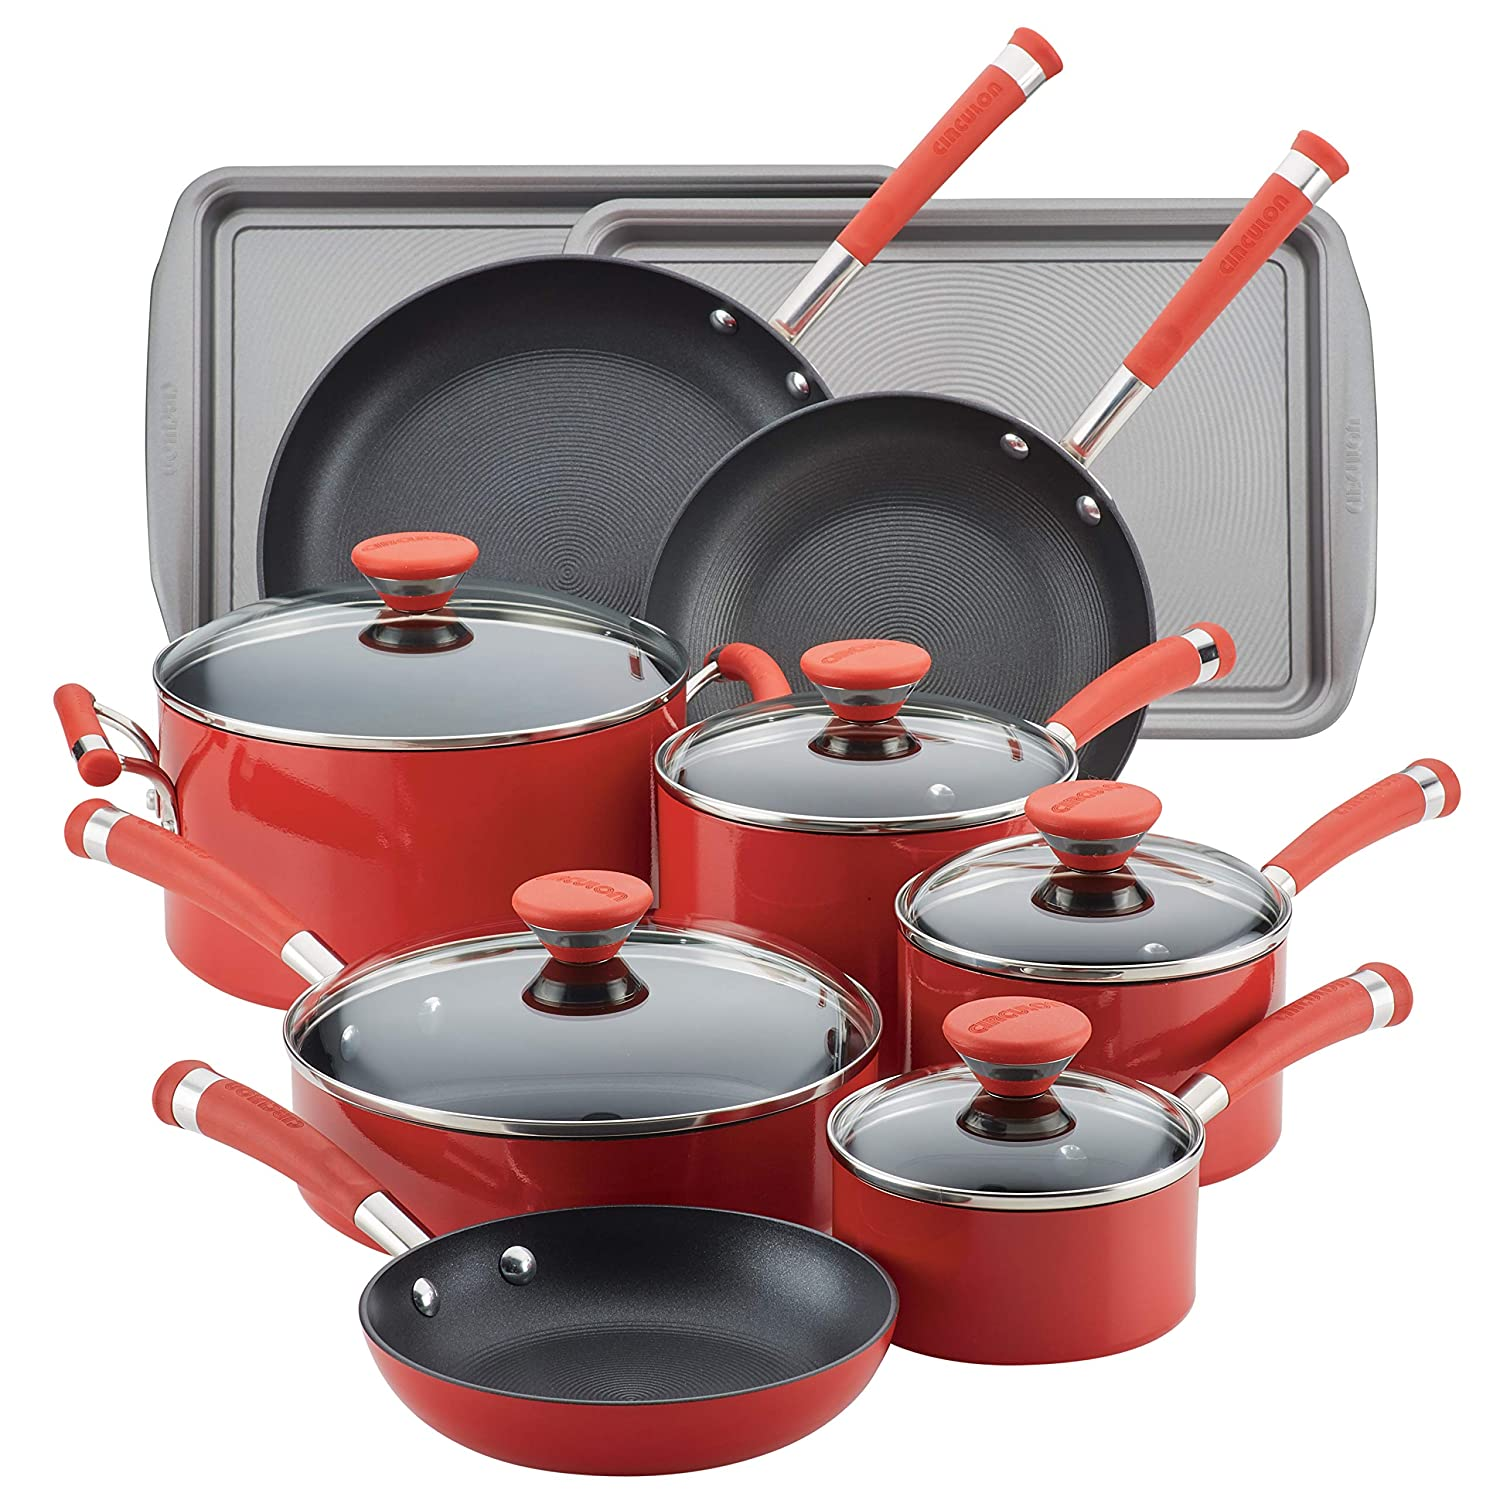 Circulon Acclaim Aluminum Nonstick Cookware Set, 15-Piece